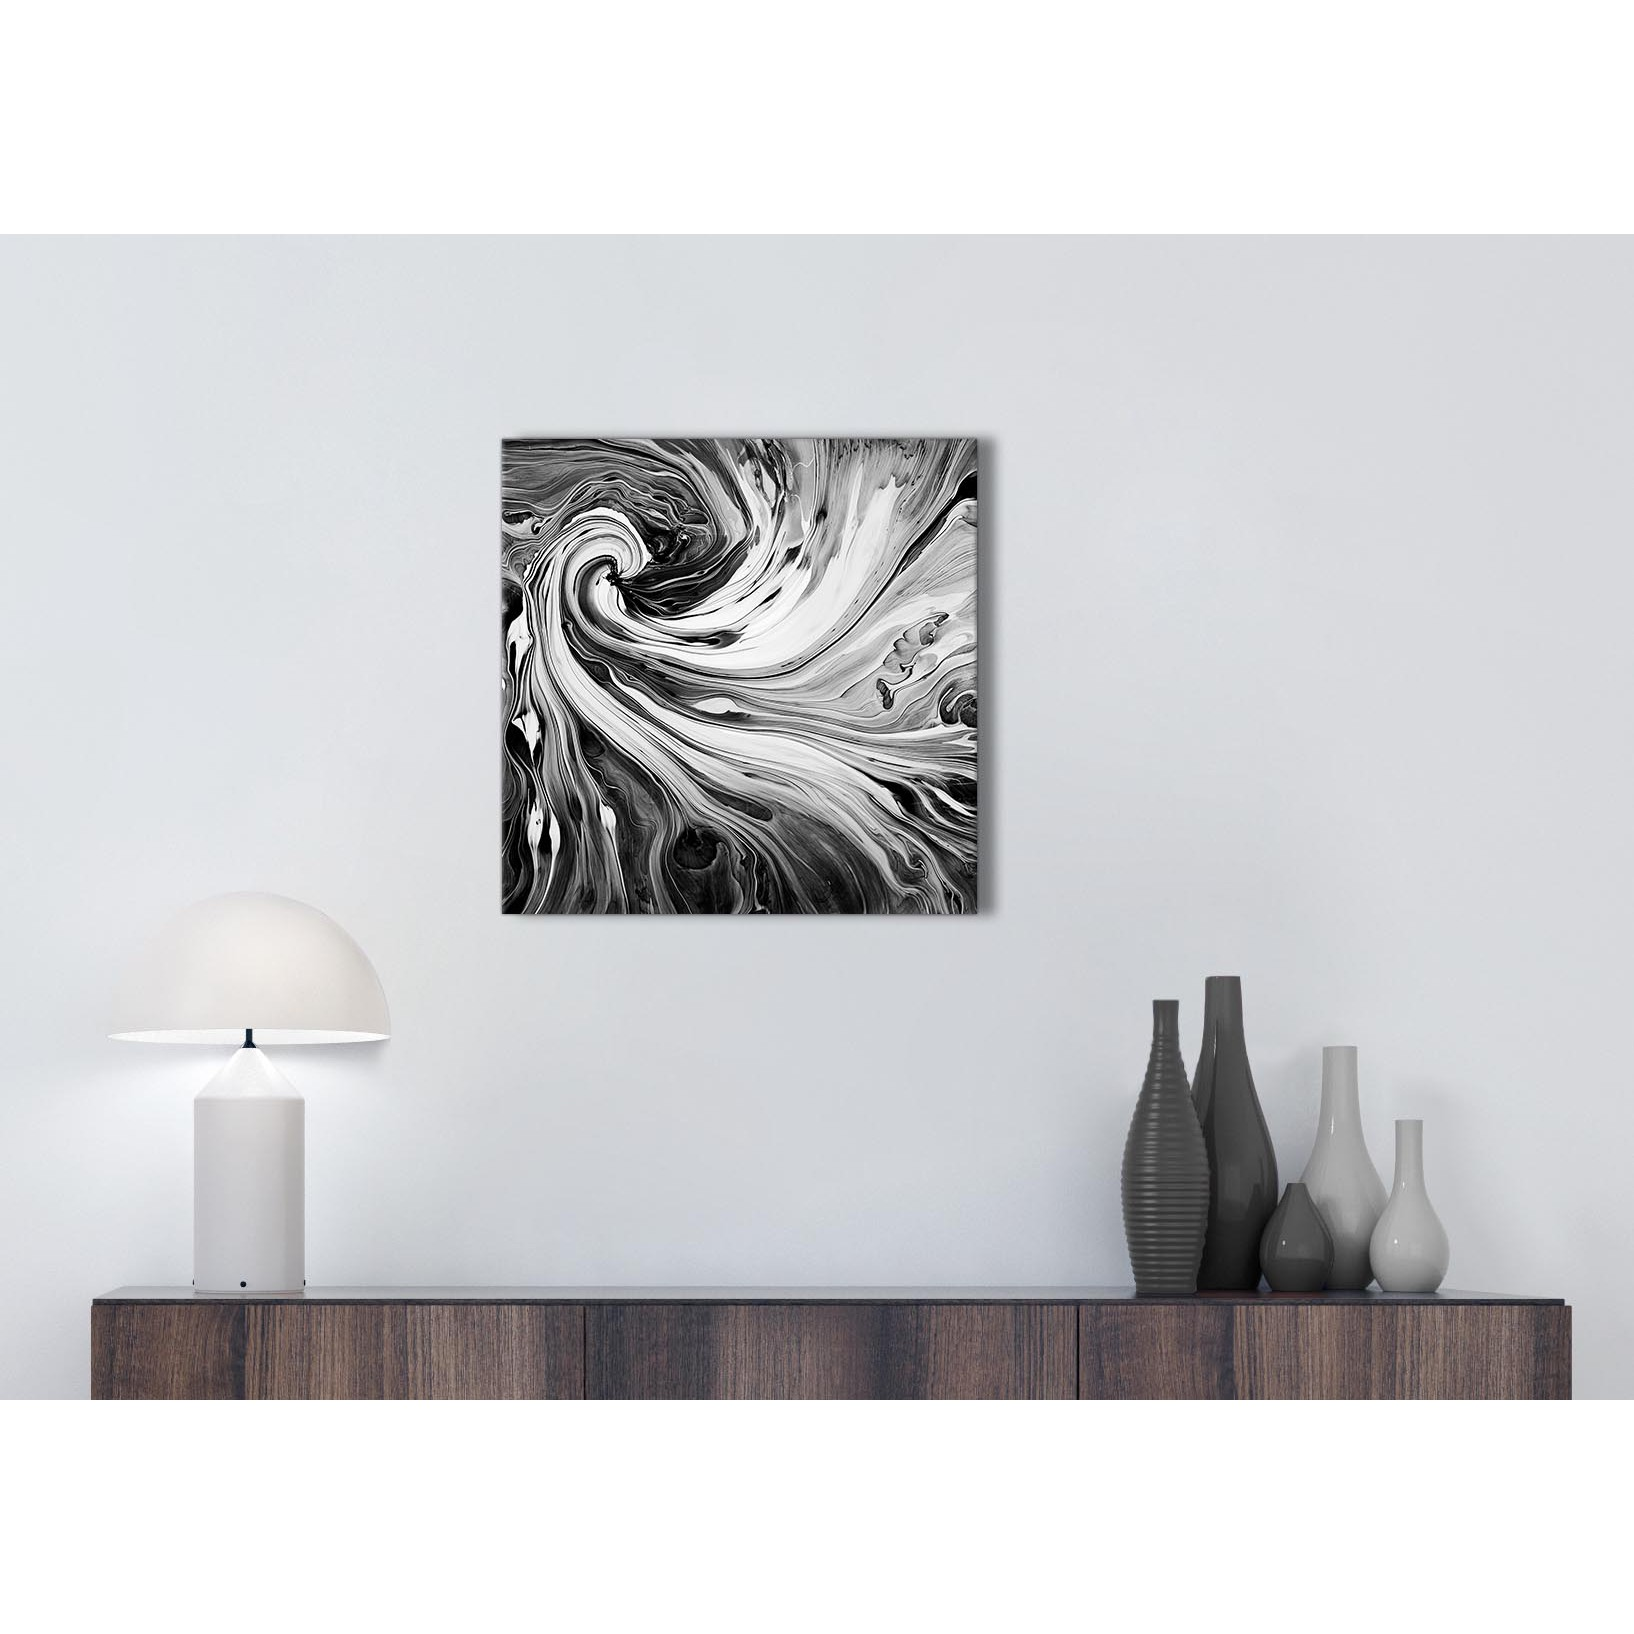 Display gallery item 1 · cheap black white grey swirls modern abstract canvas wall art modern 49cm square 1s354s for your display gallery item 2